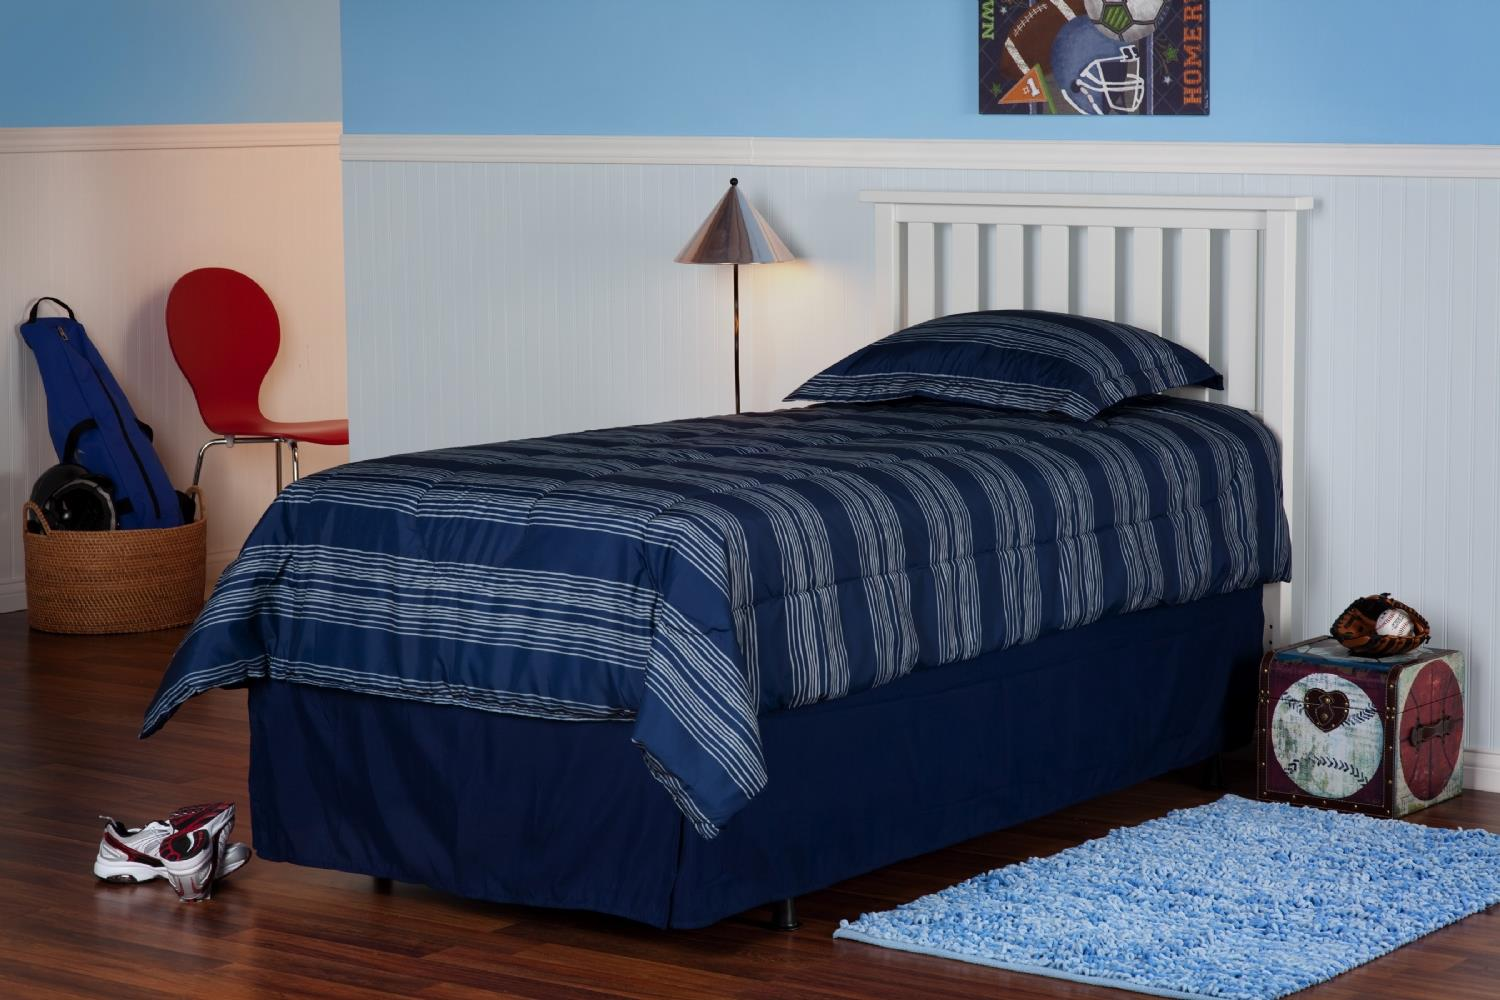 Fashion Bed Group Belmont Full/Queen Headboard - Item Number: 51C529